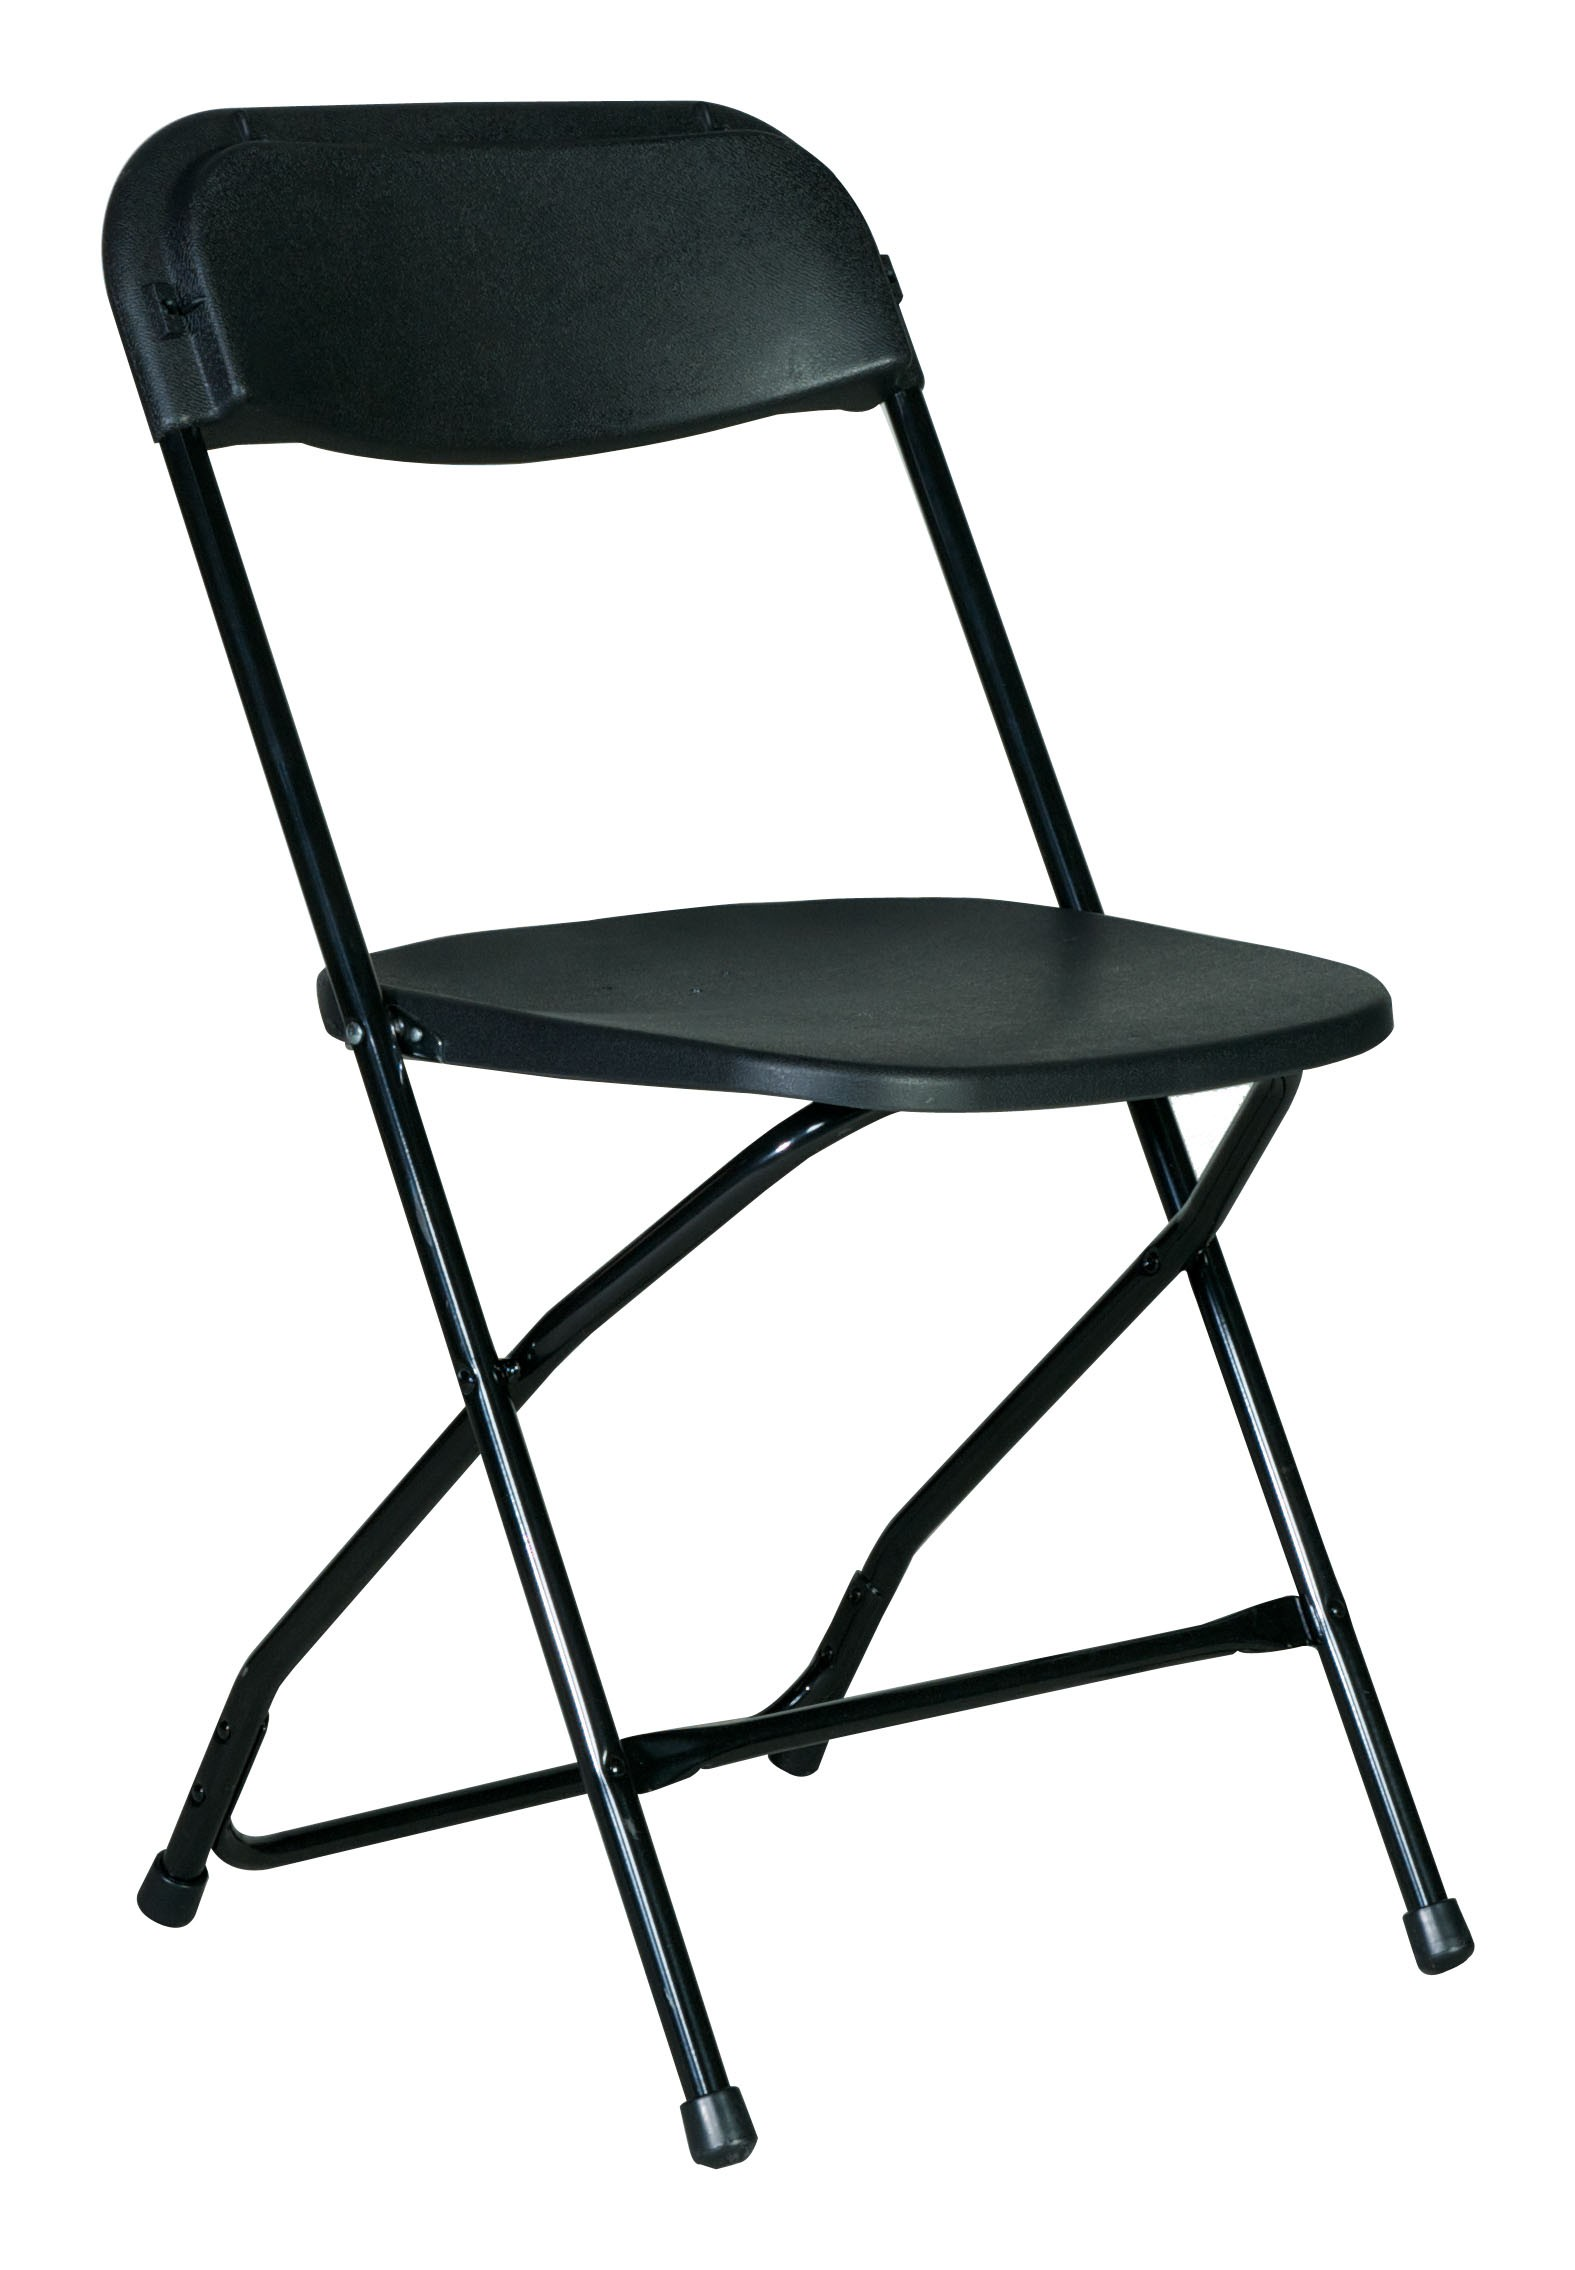 Folding Chairs For Rent Glow The Event Store Black Folding Resin Chair 3 00